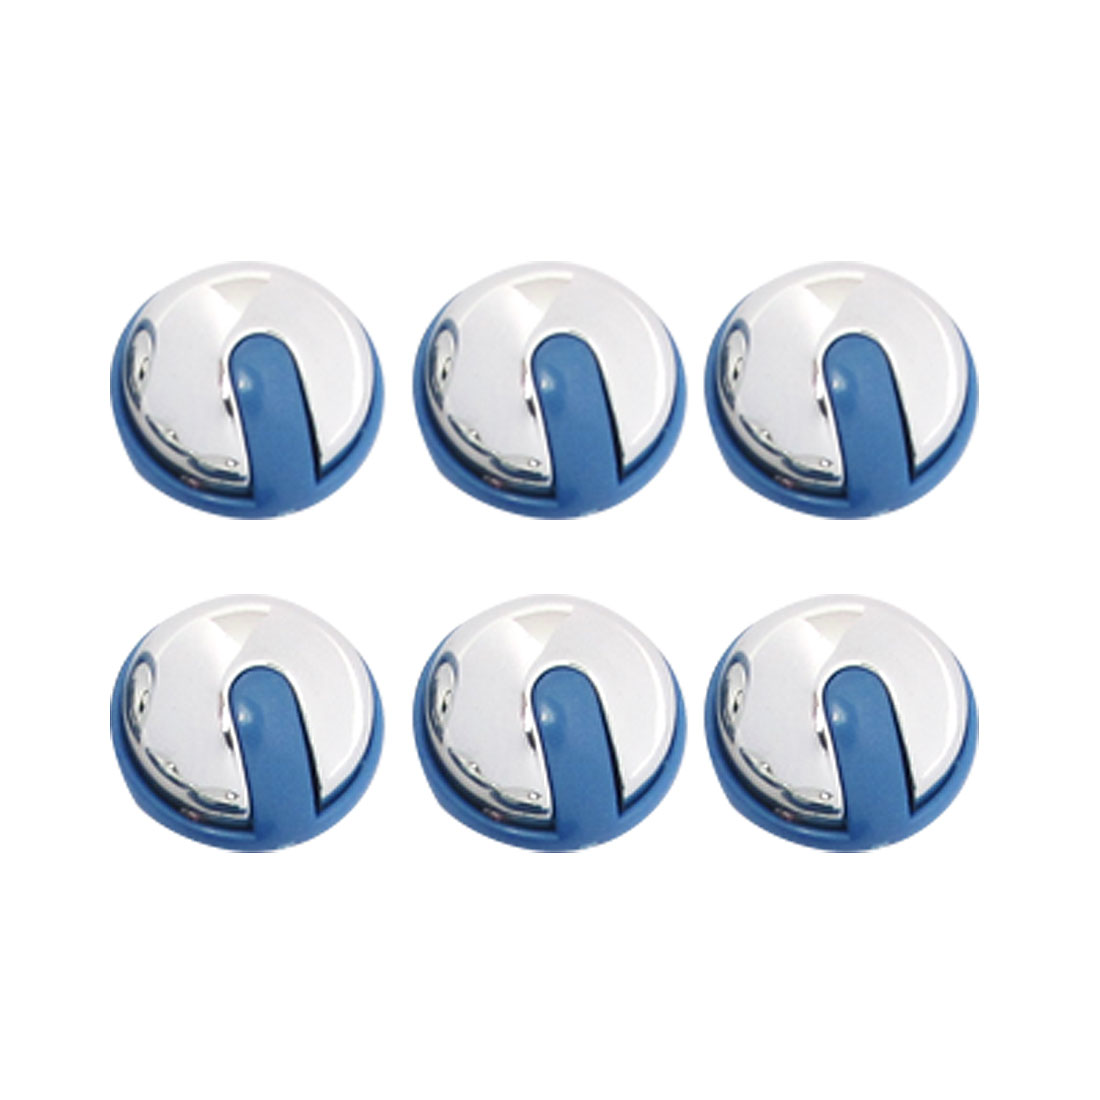 Mini-Half-Ball-Car-Door-Decorative-Guard-Stickers-8Pcs